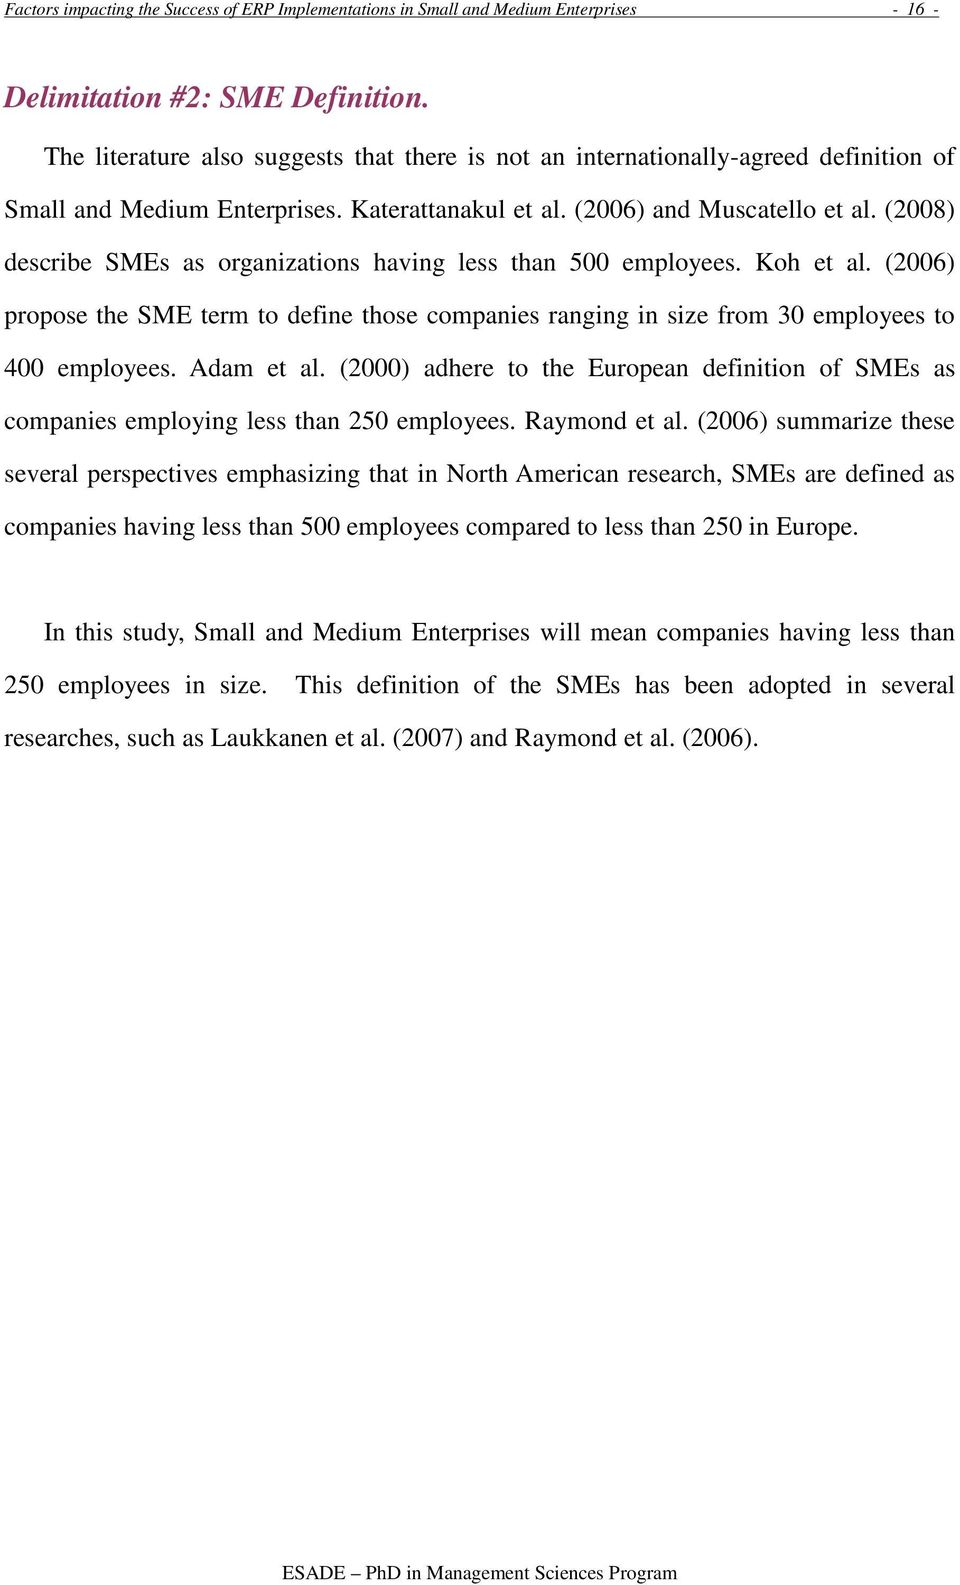 (2008) describe SMEs as organizations having less than 500 employees. Koh et al. (2006) propose the SME term to define those companies ranging in size from 30 employees to 400 employees. Adam et al.